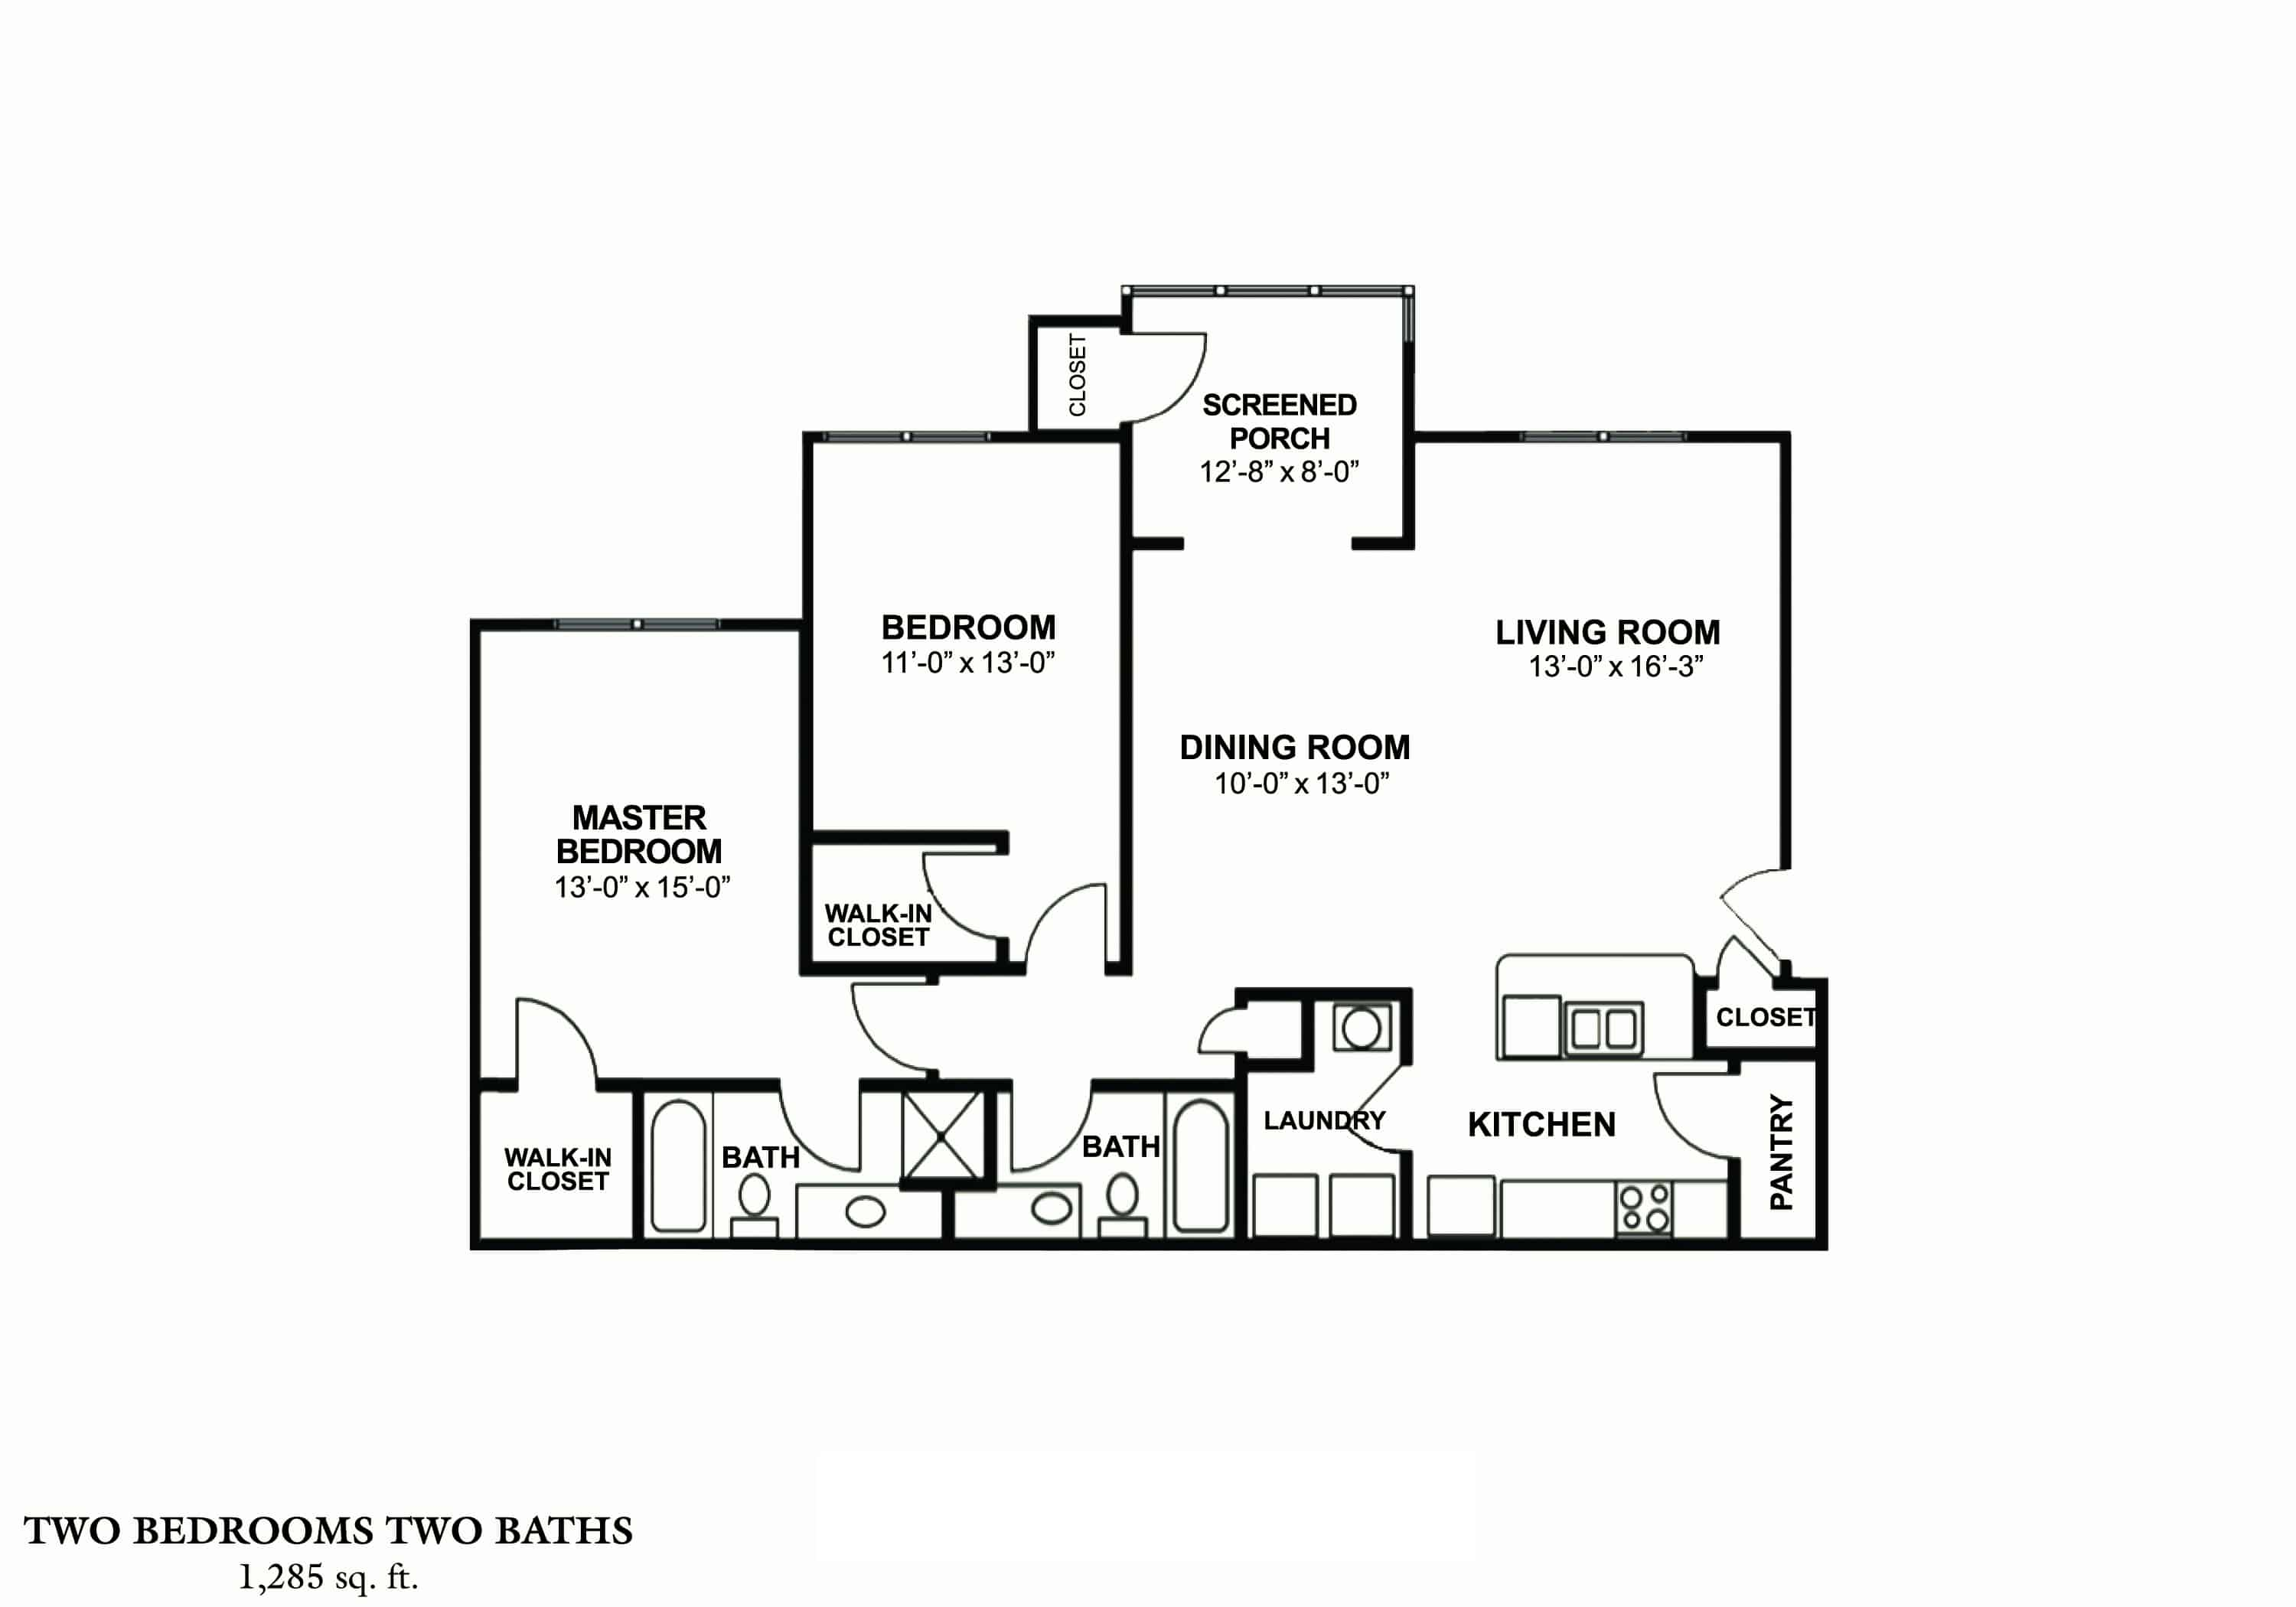 Greystone's Columbus Georgia Apartments 2 bedroom plan